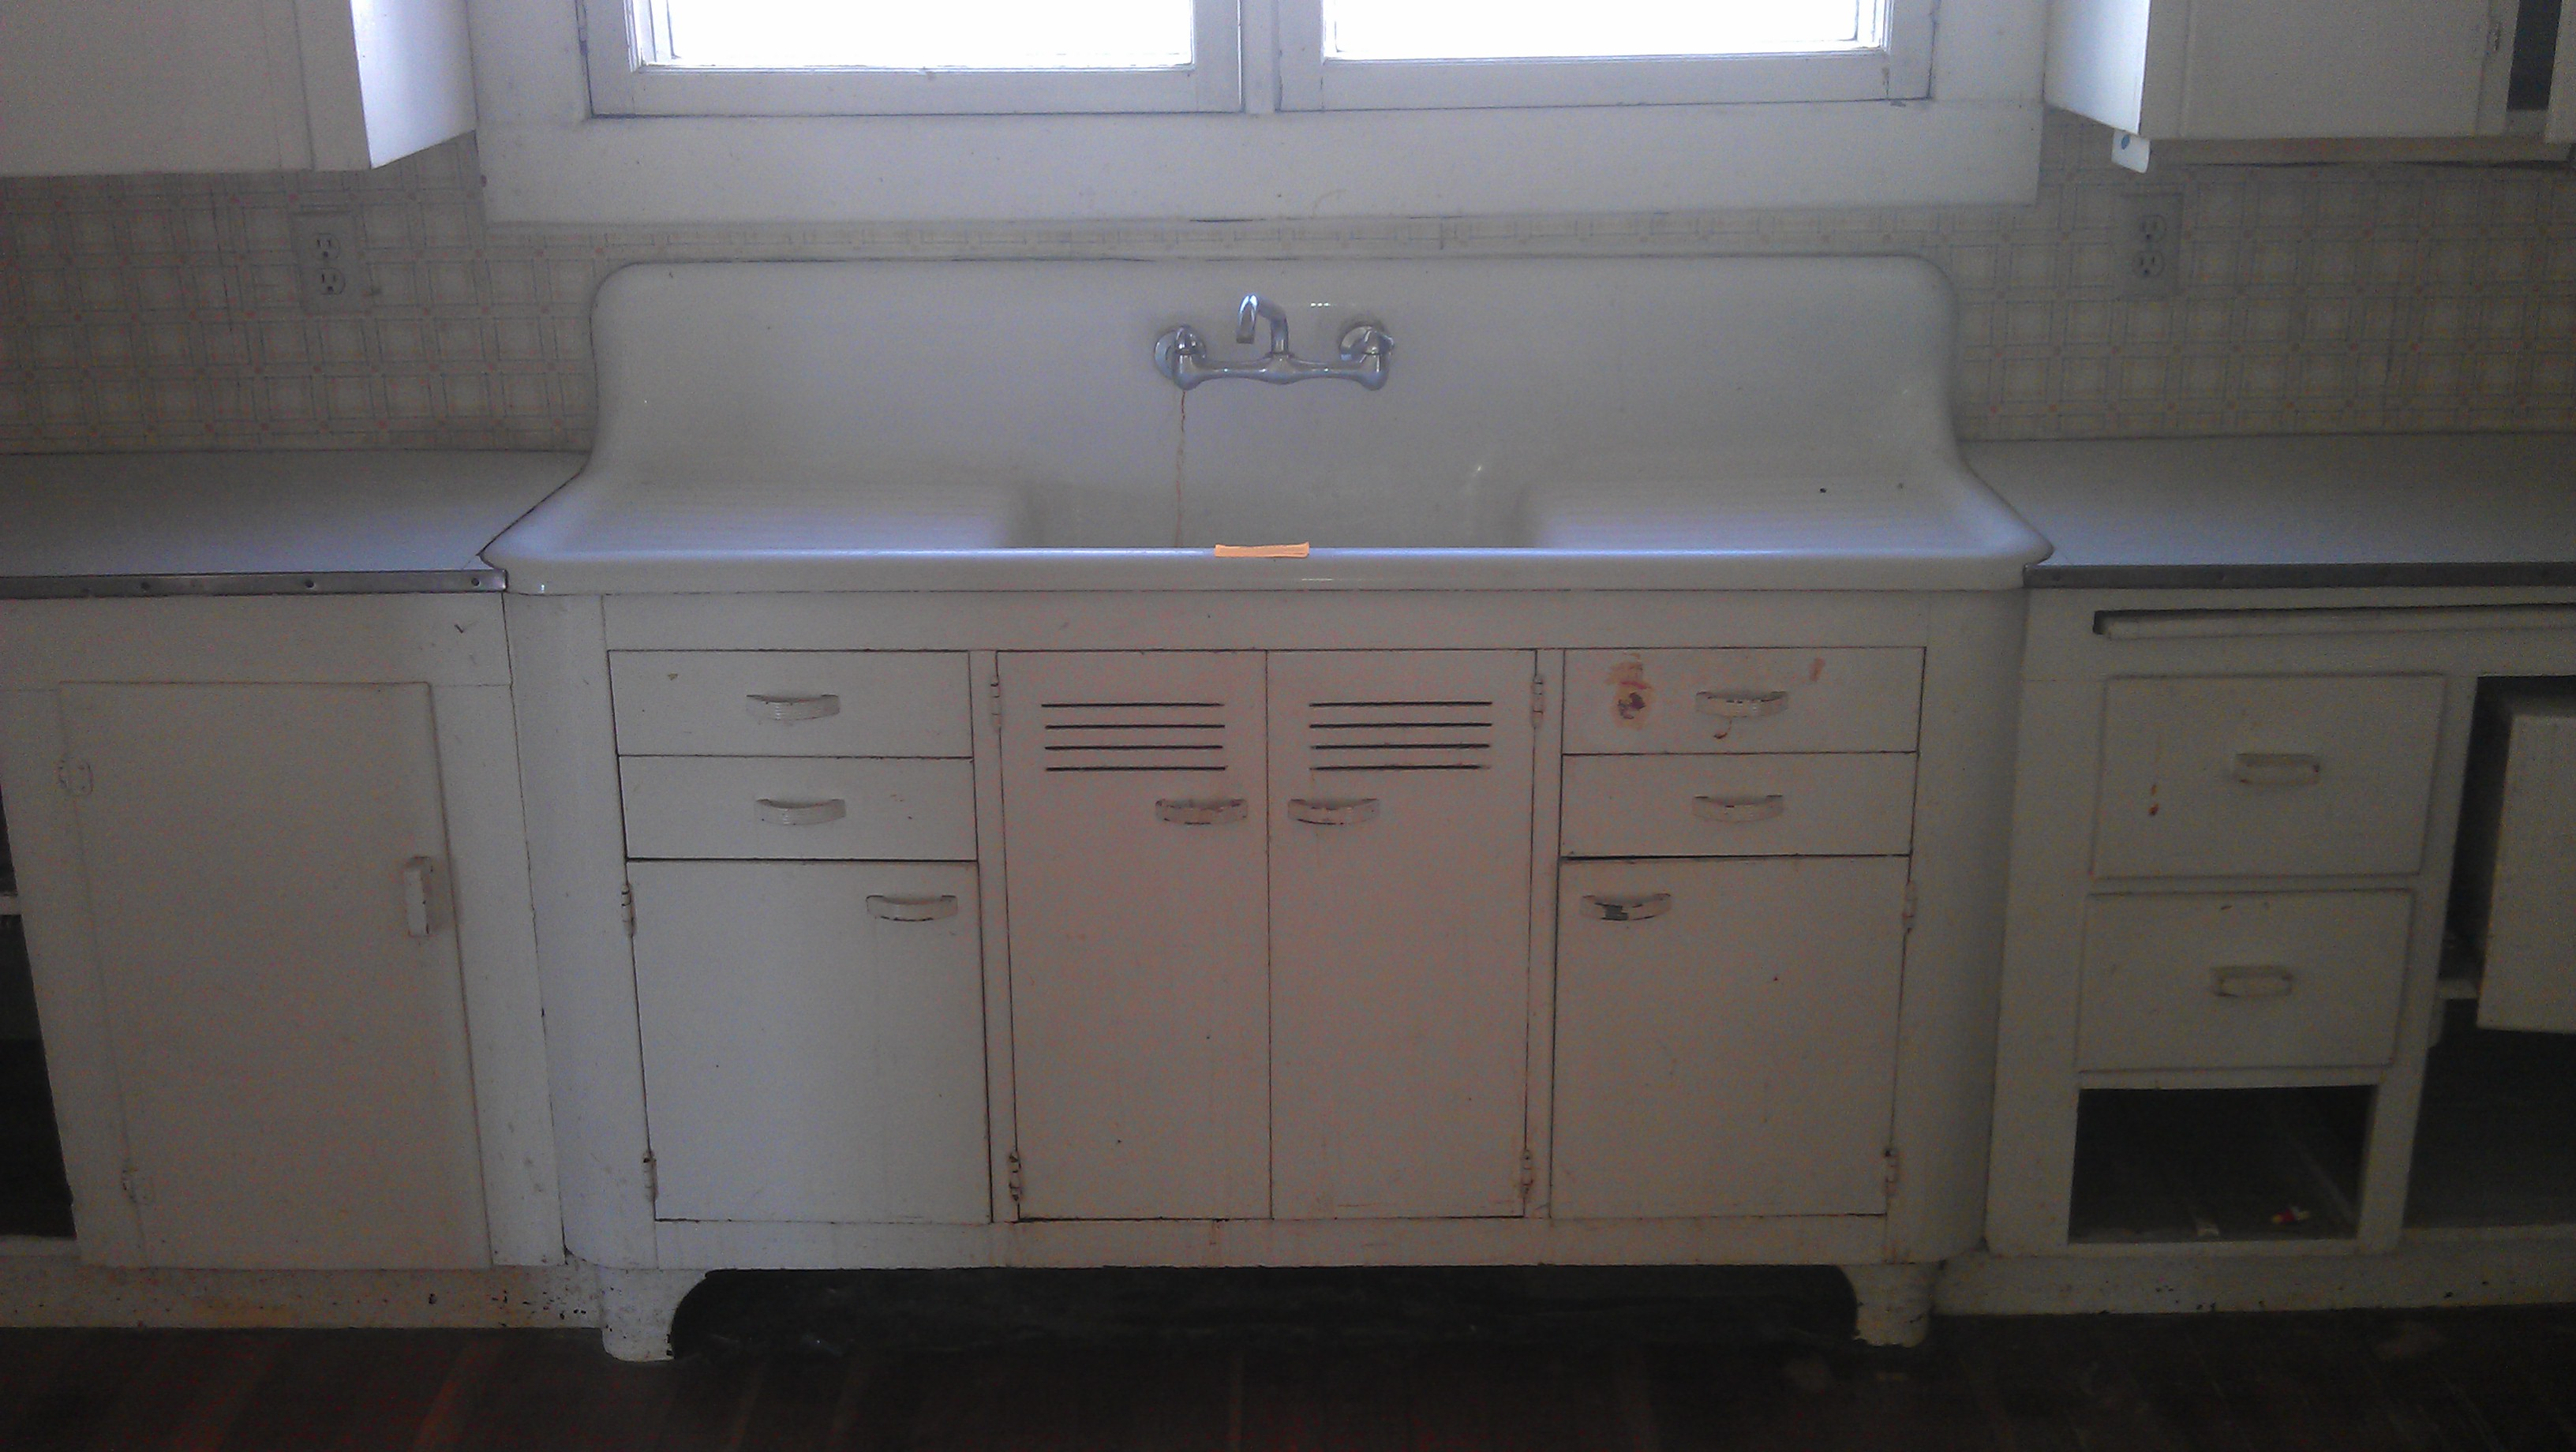 Vintage Farmhouse Kitchen Sink : ... -sink source: http://www.pic2fly.com/Antique+Drainboard+Sinks.html